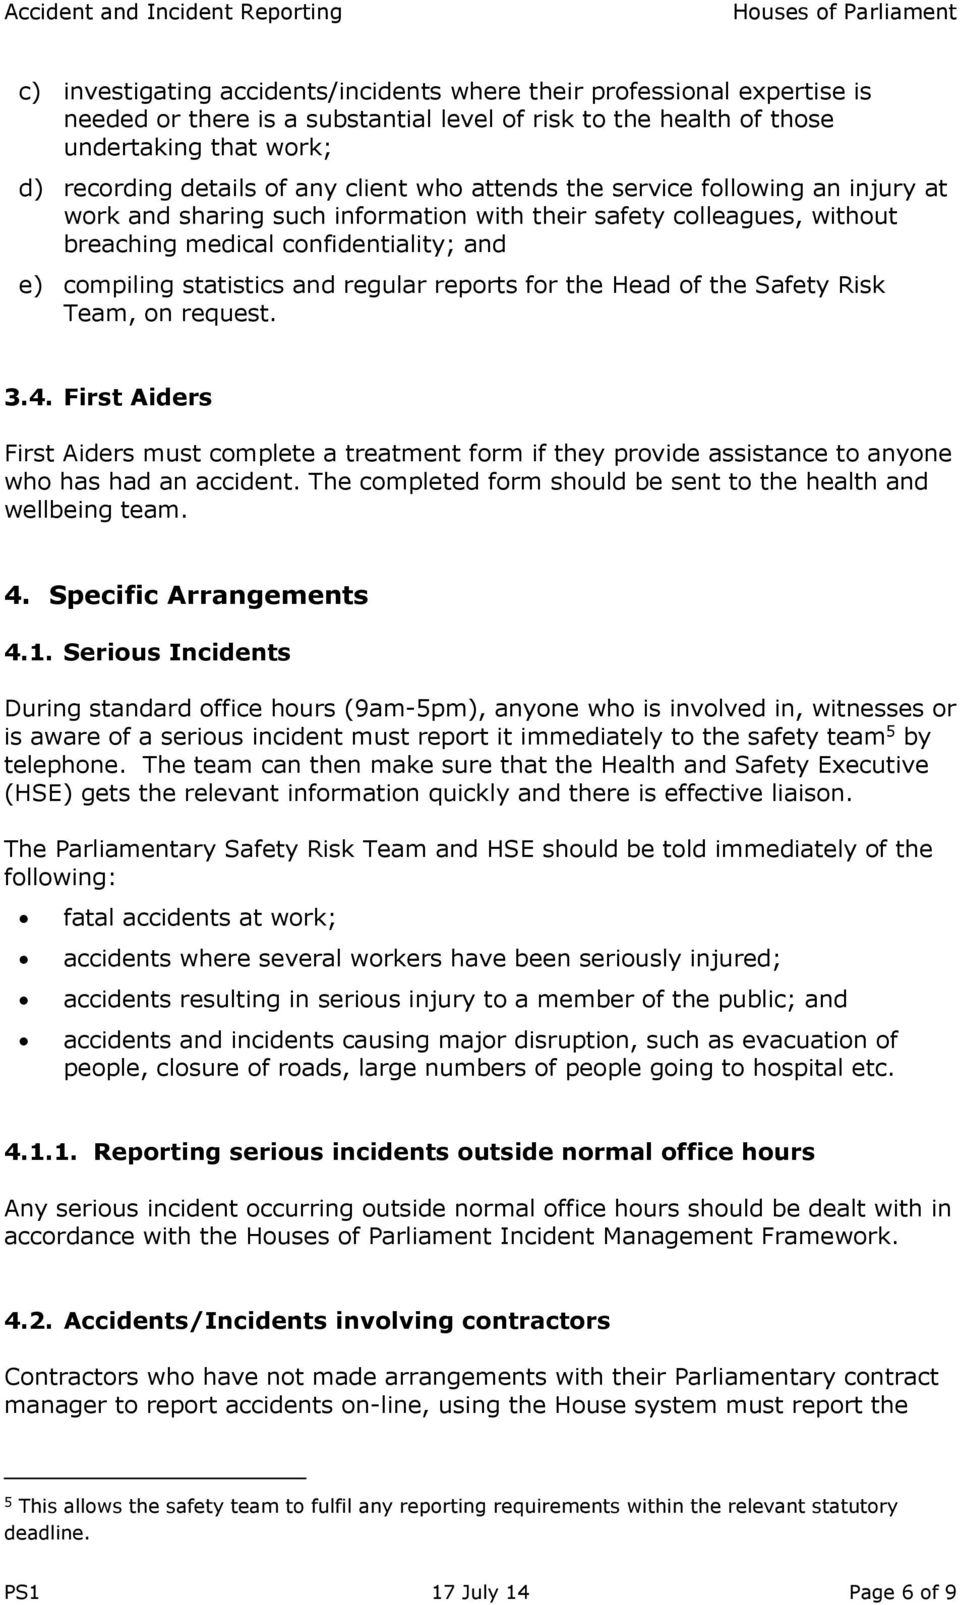 regular reports for the Head of the Safety Risk Team, on request. 3.4. First Aiders First Aiders must complete a treatment form if they provide assistance to anyone who has had an accident.